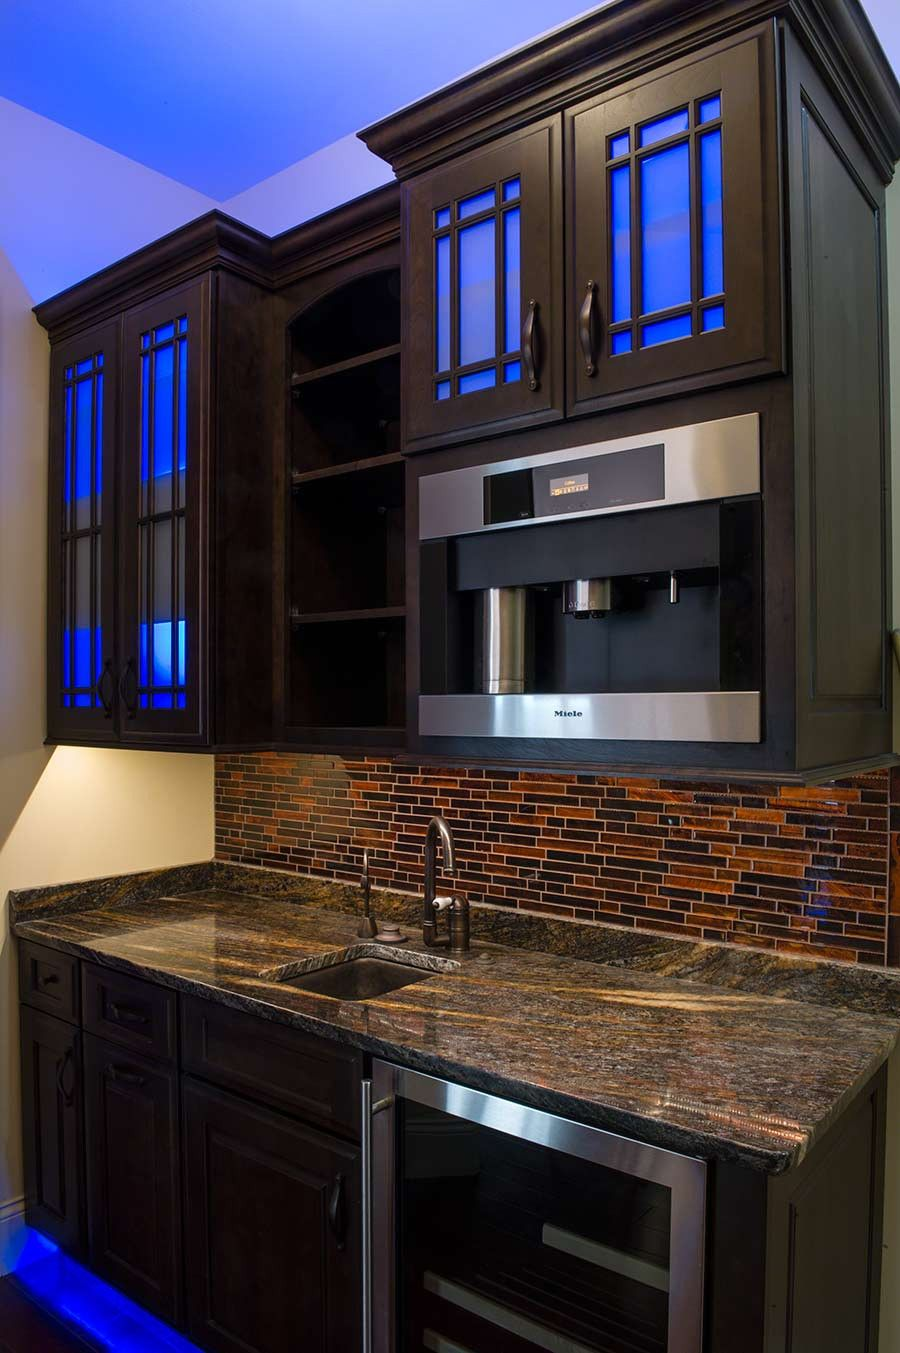 55 Super Bright Led Under Cabinet Lighting Kitchen Cabinets Storage Ideas Check More At